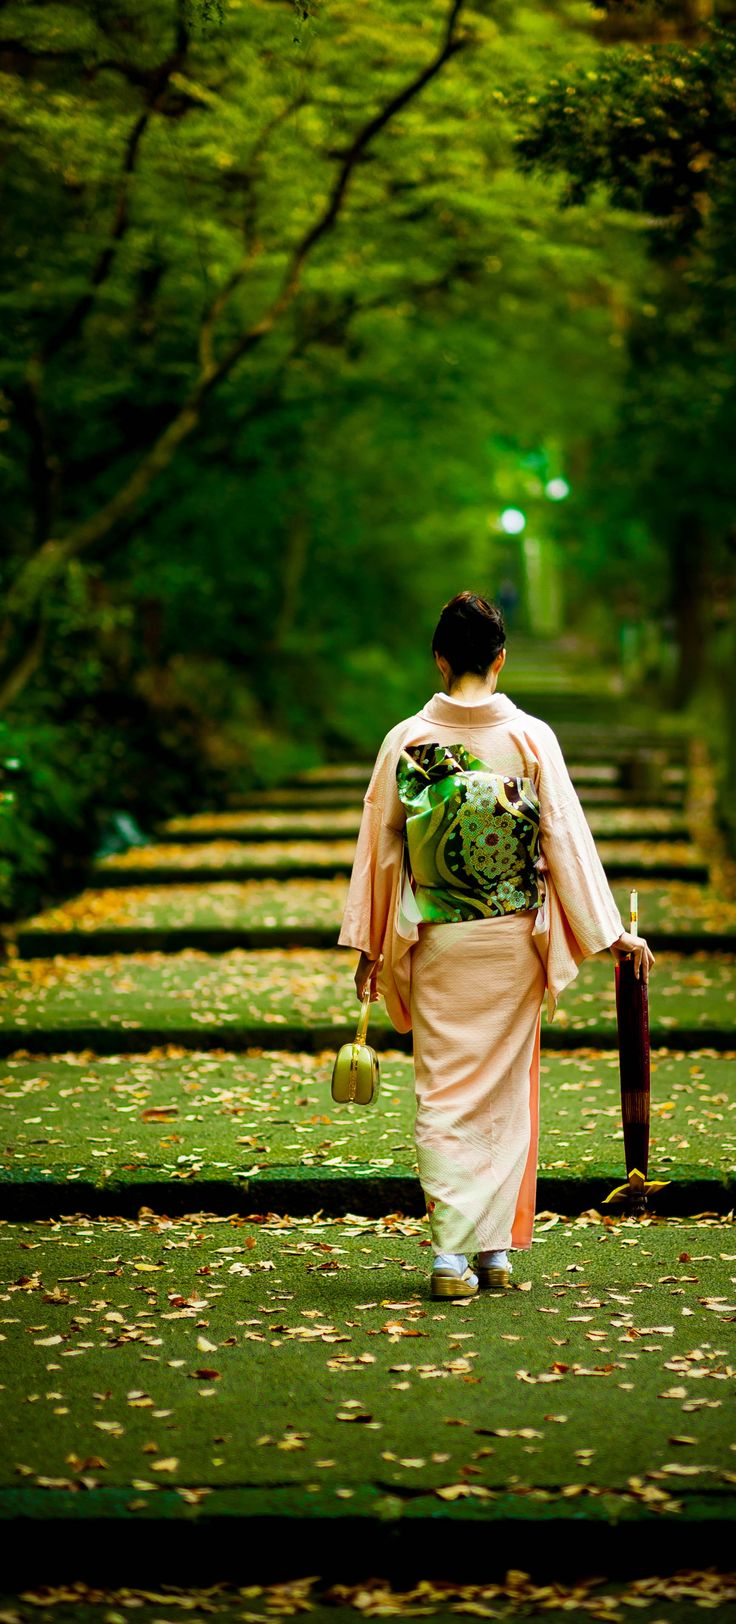 Japanese lady in kimono and wagasa 8japanese umbrella)